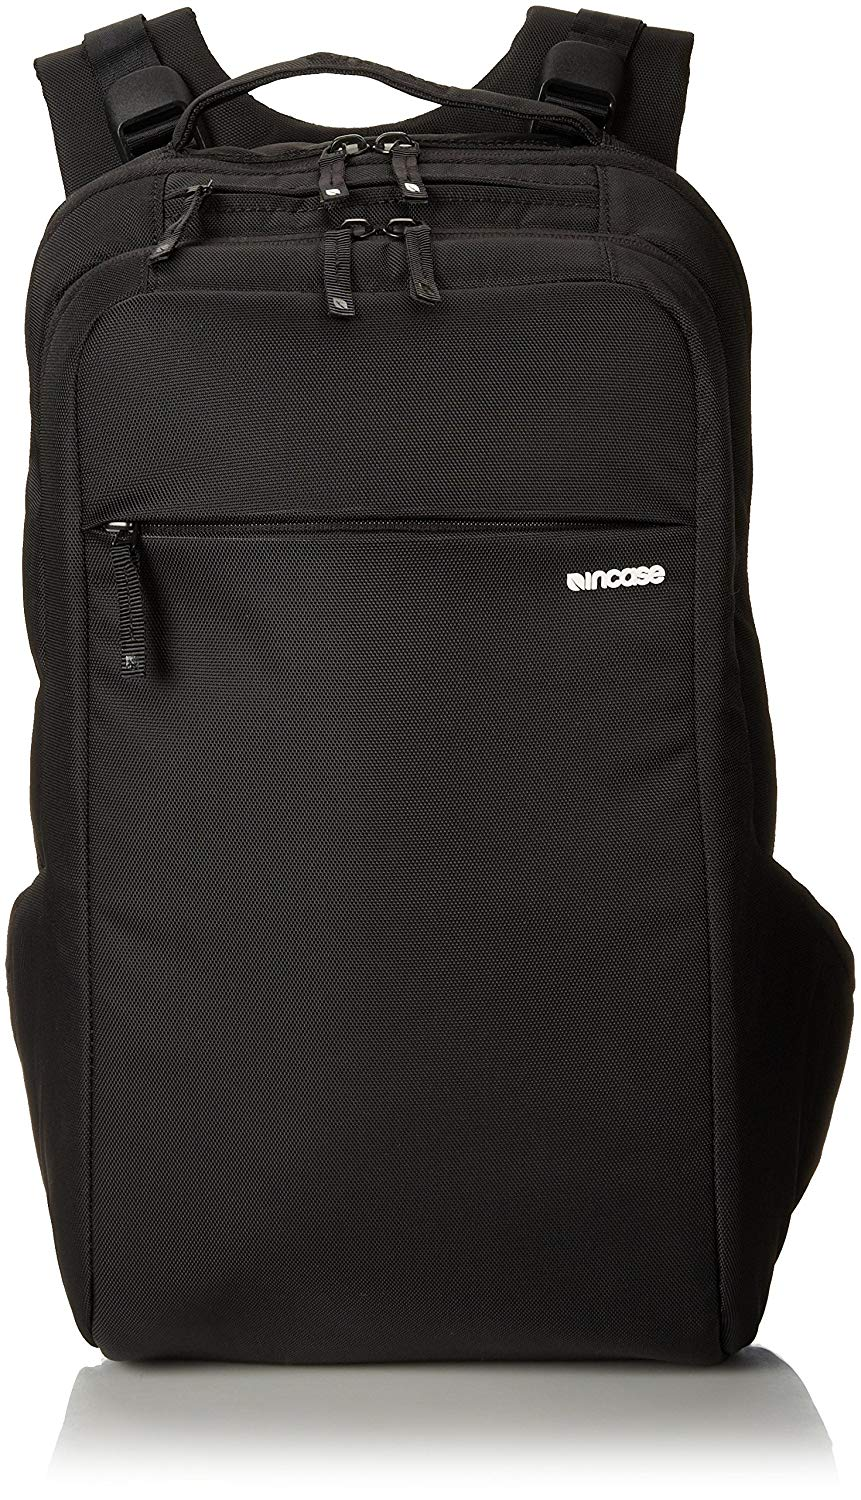 Best laptop backpack for women 1